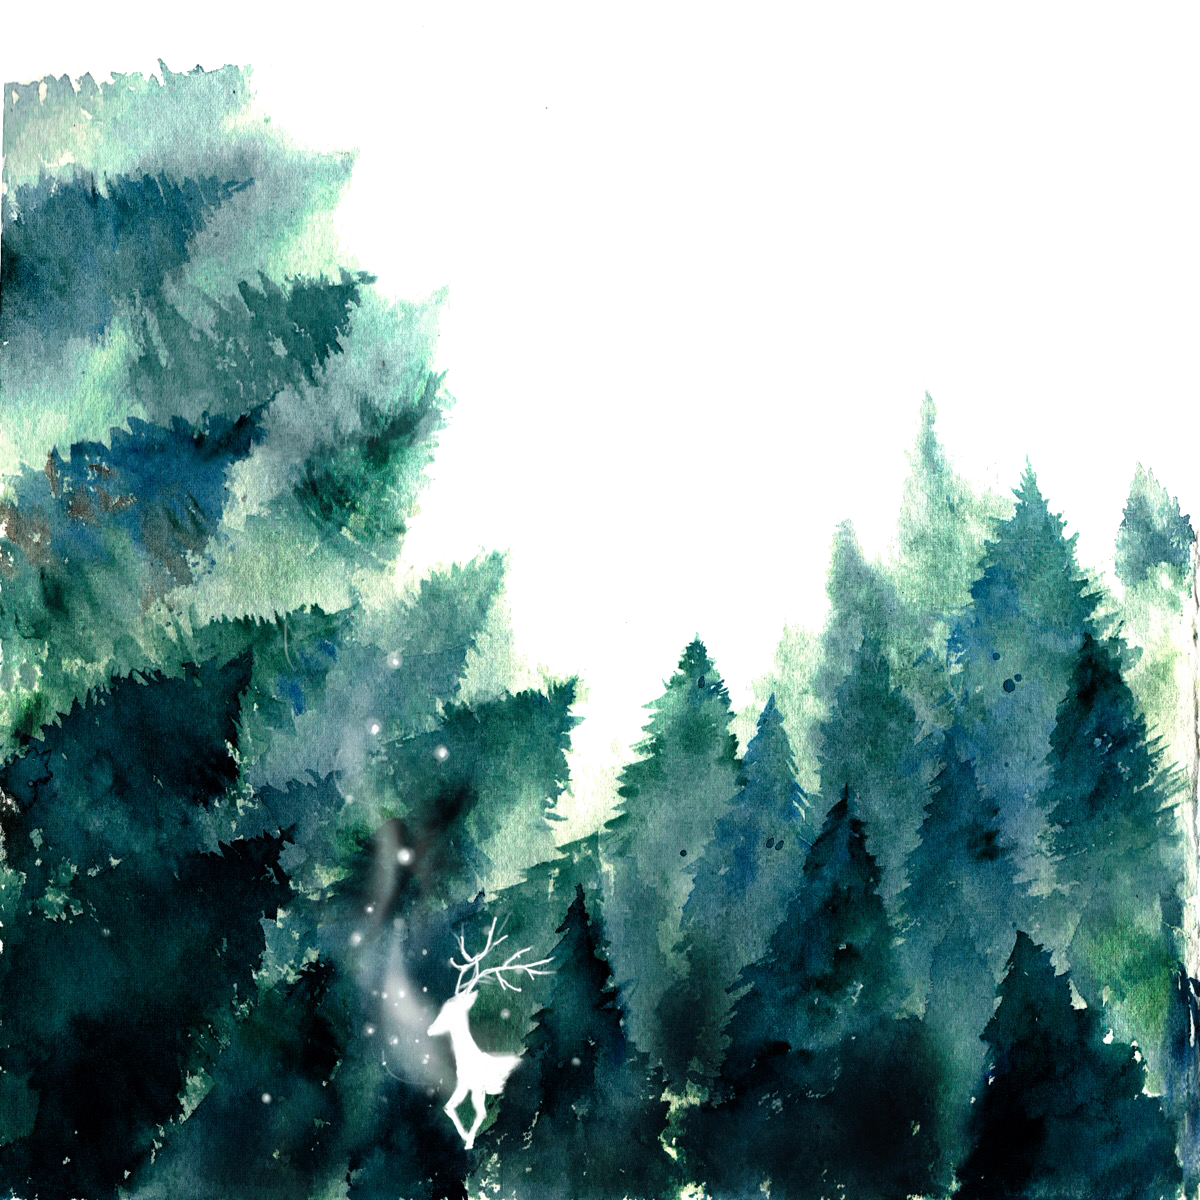 Forest Art Png - Forest | PNG All